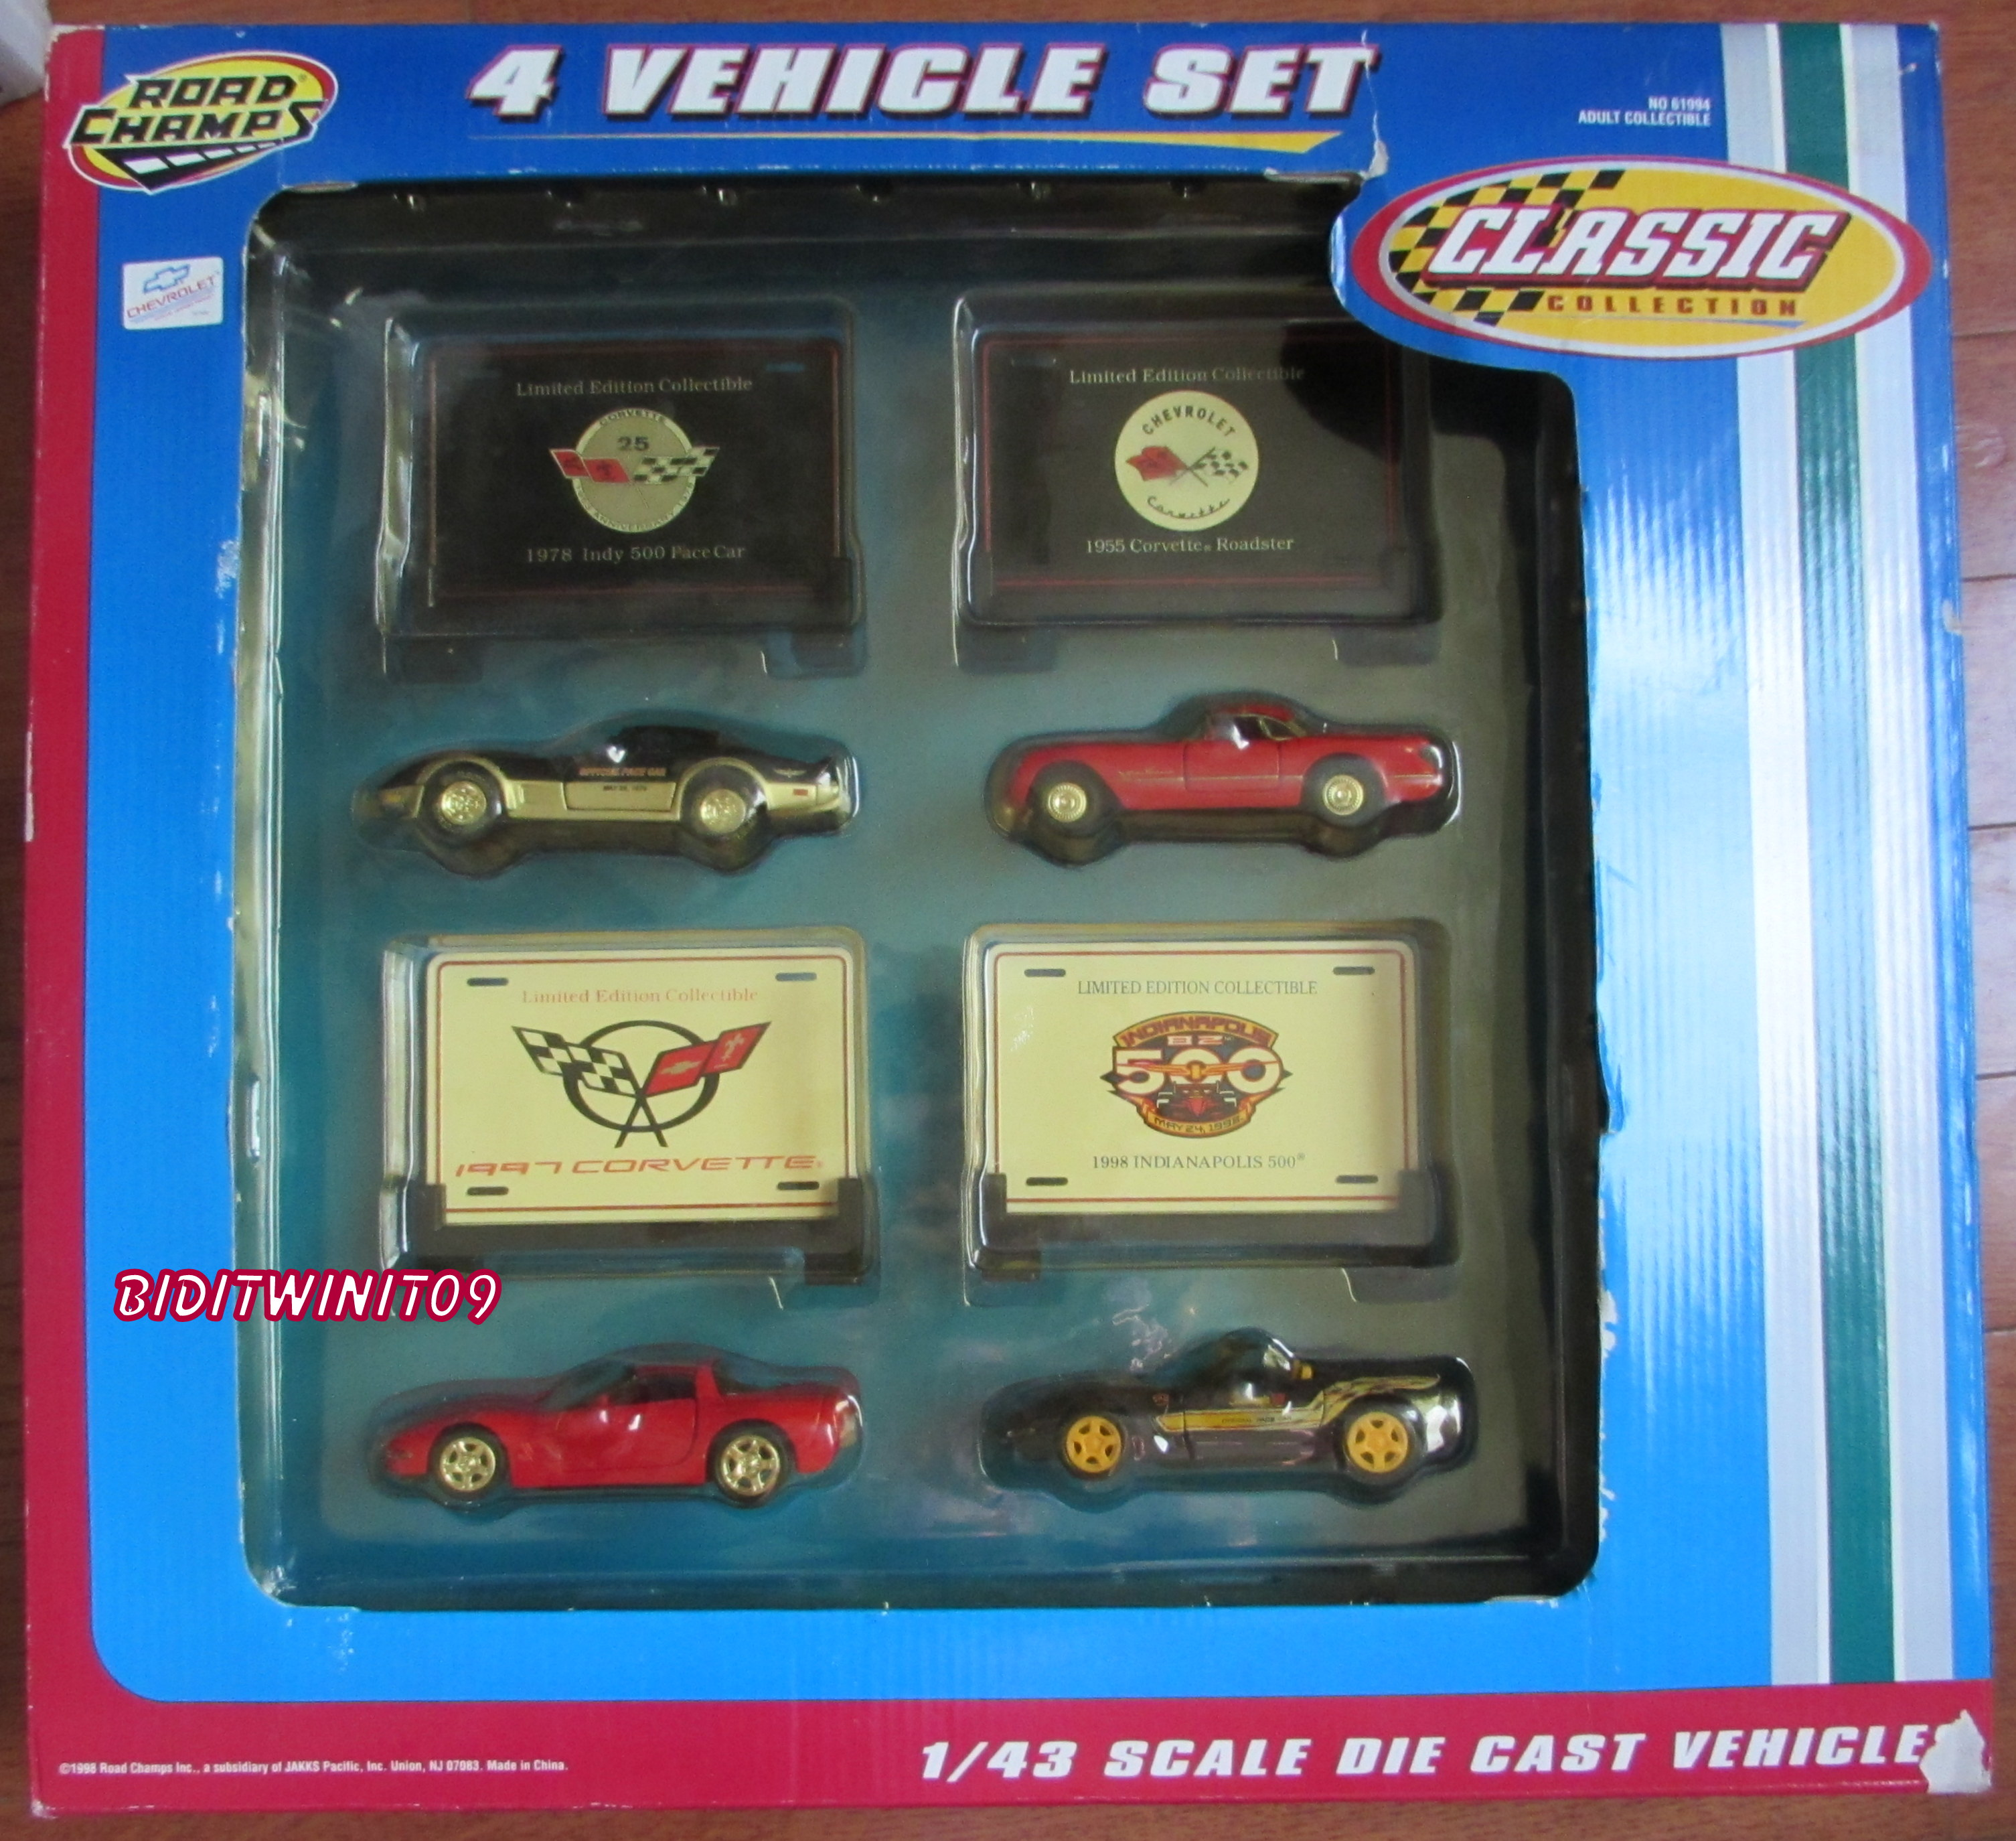 "1/43 ROAD CHAMPS CHEVROLET ""CLASSIC COLLECTION"" CORVETTE 4 VEHICLE SET E+"